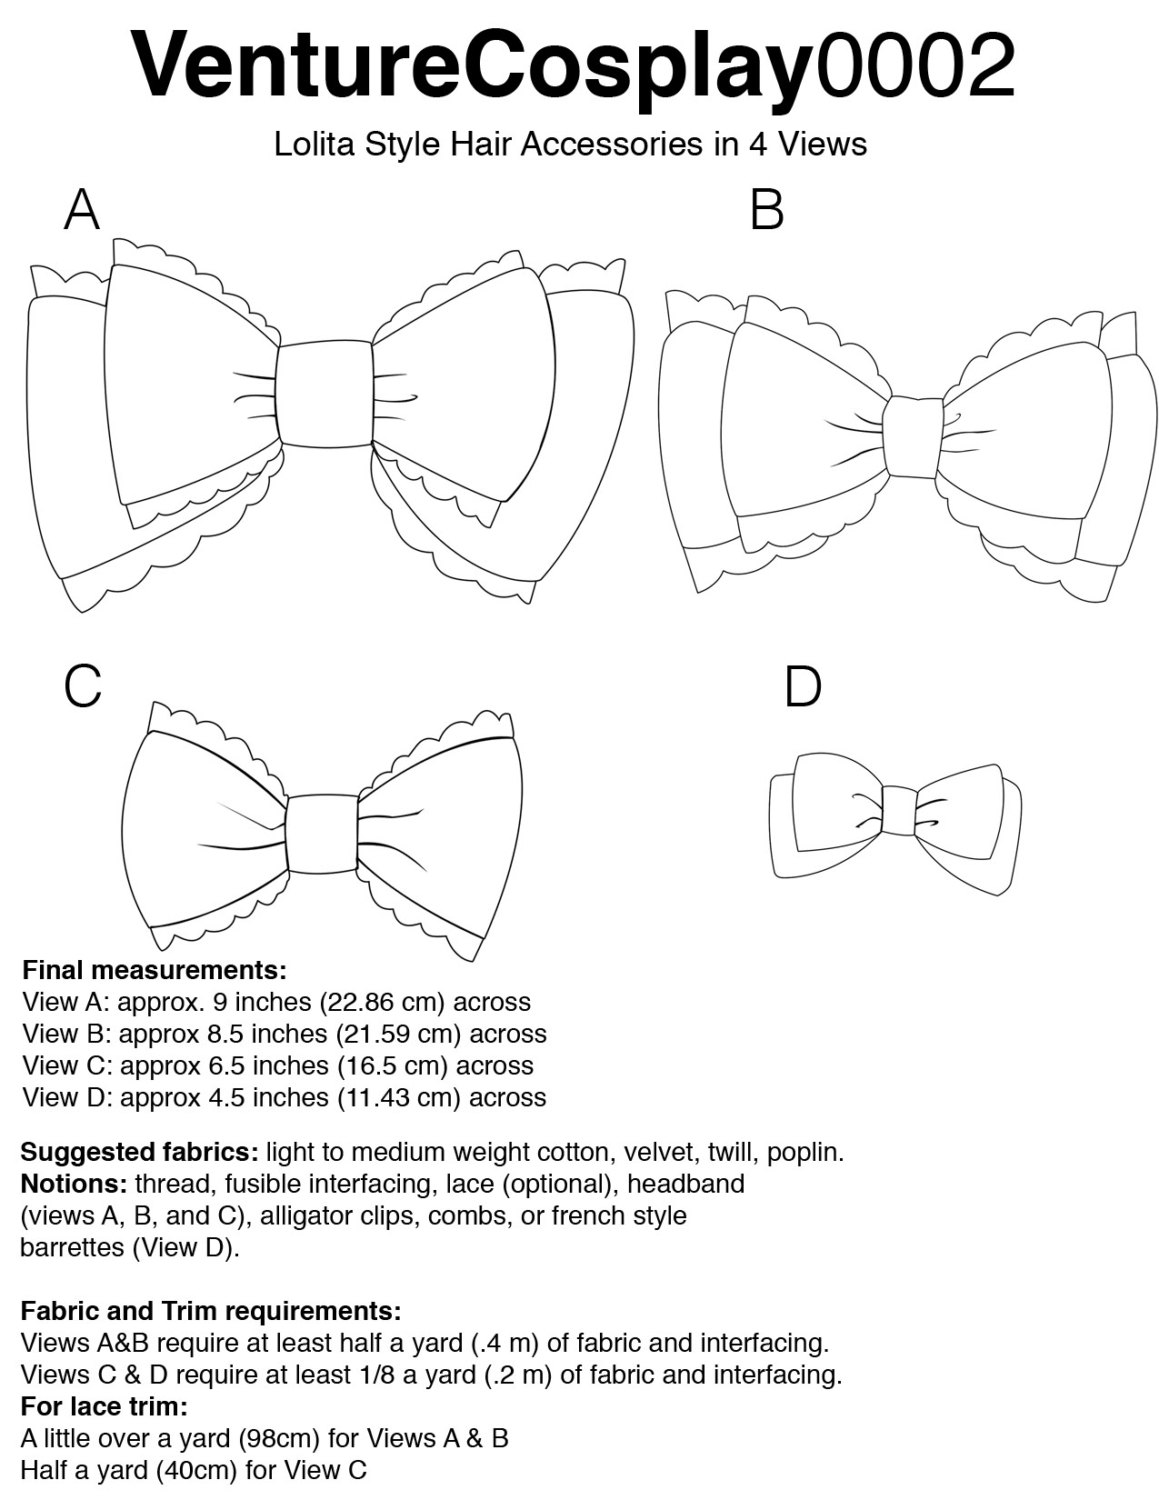 adorpheus | Printable Sewing Pattern and Tutorial for EGL Lolita ...